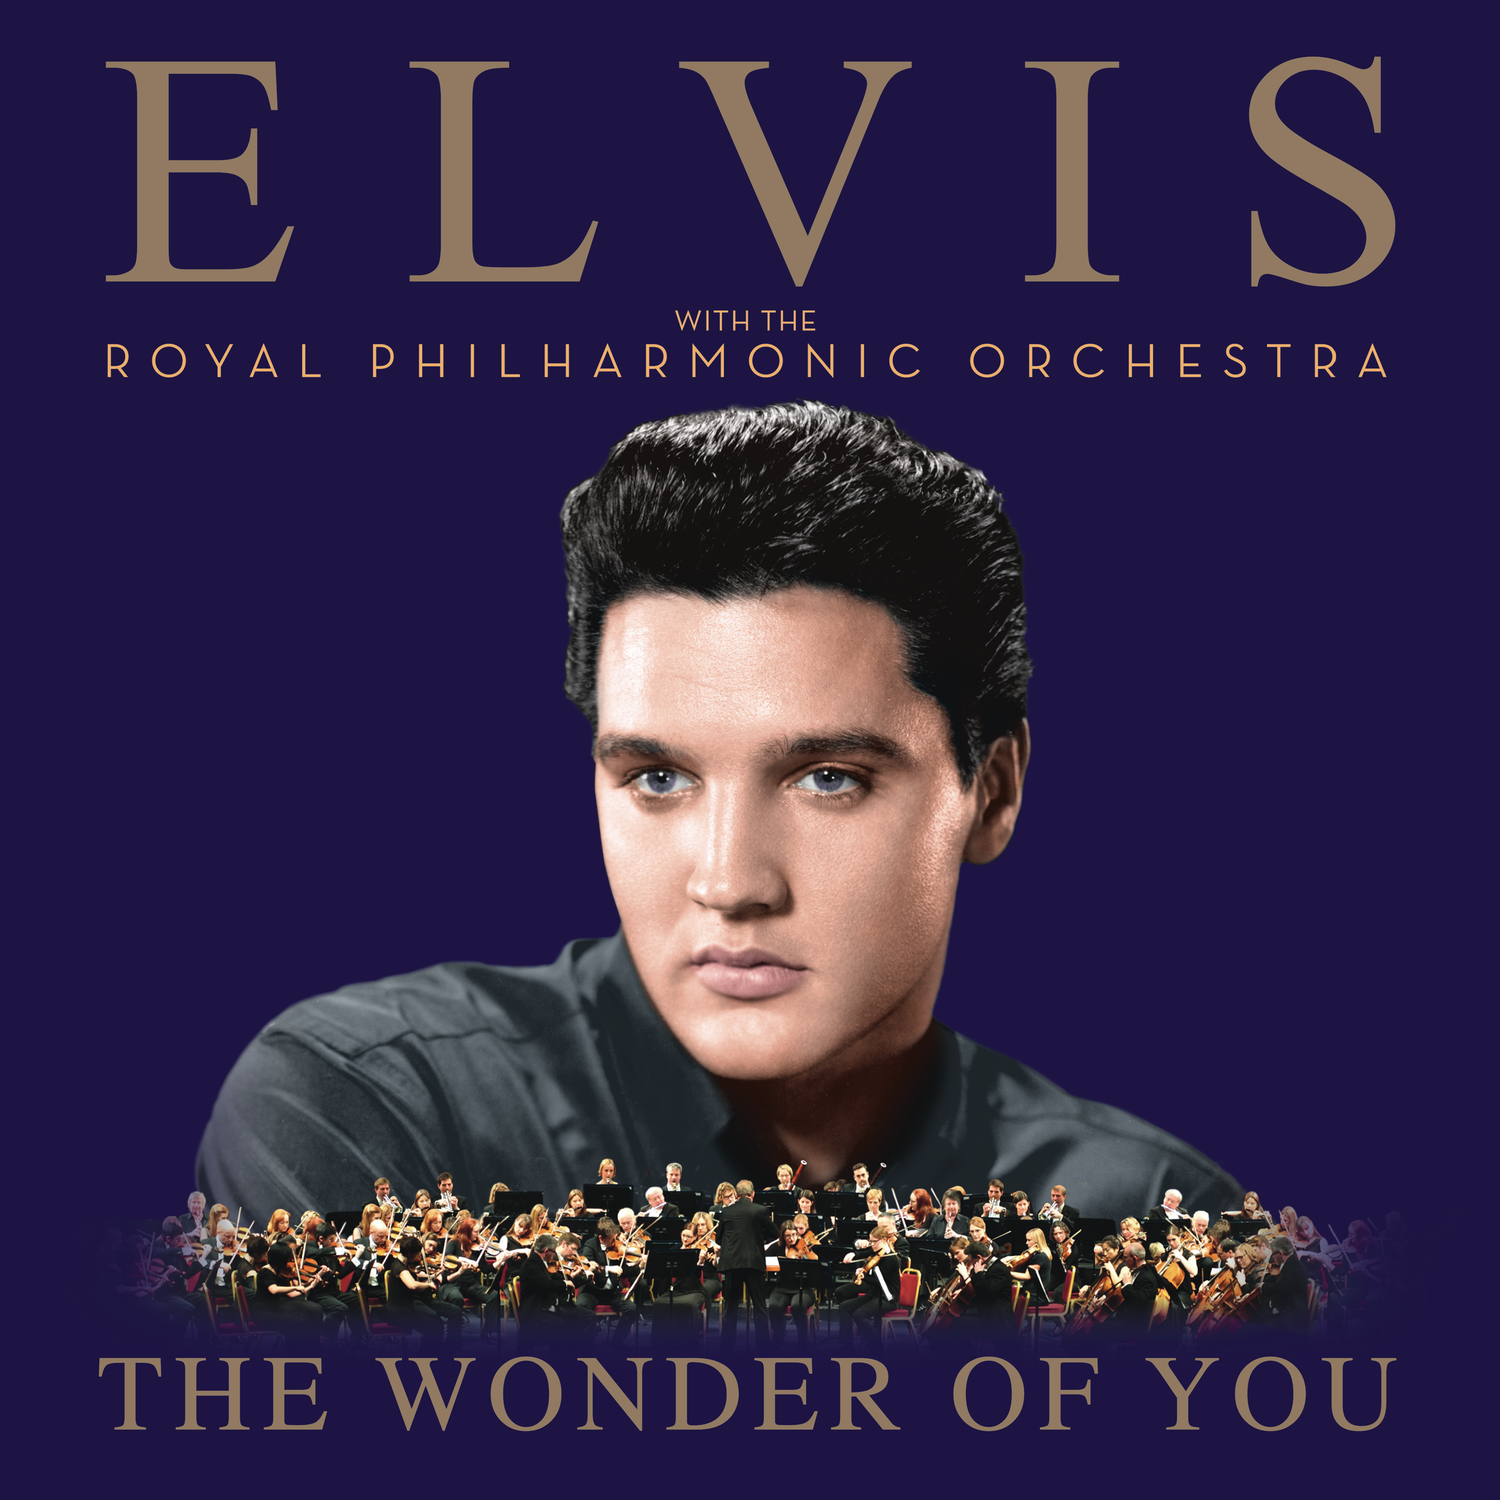 The Wonder of You: Elvis Presley with The Royal Philharmonic Orchestra vinile